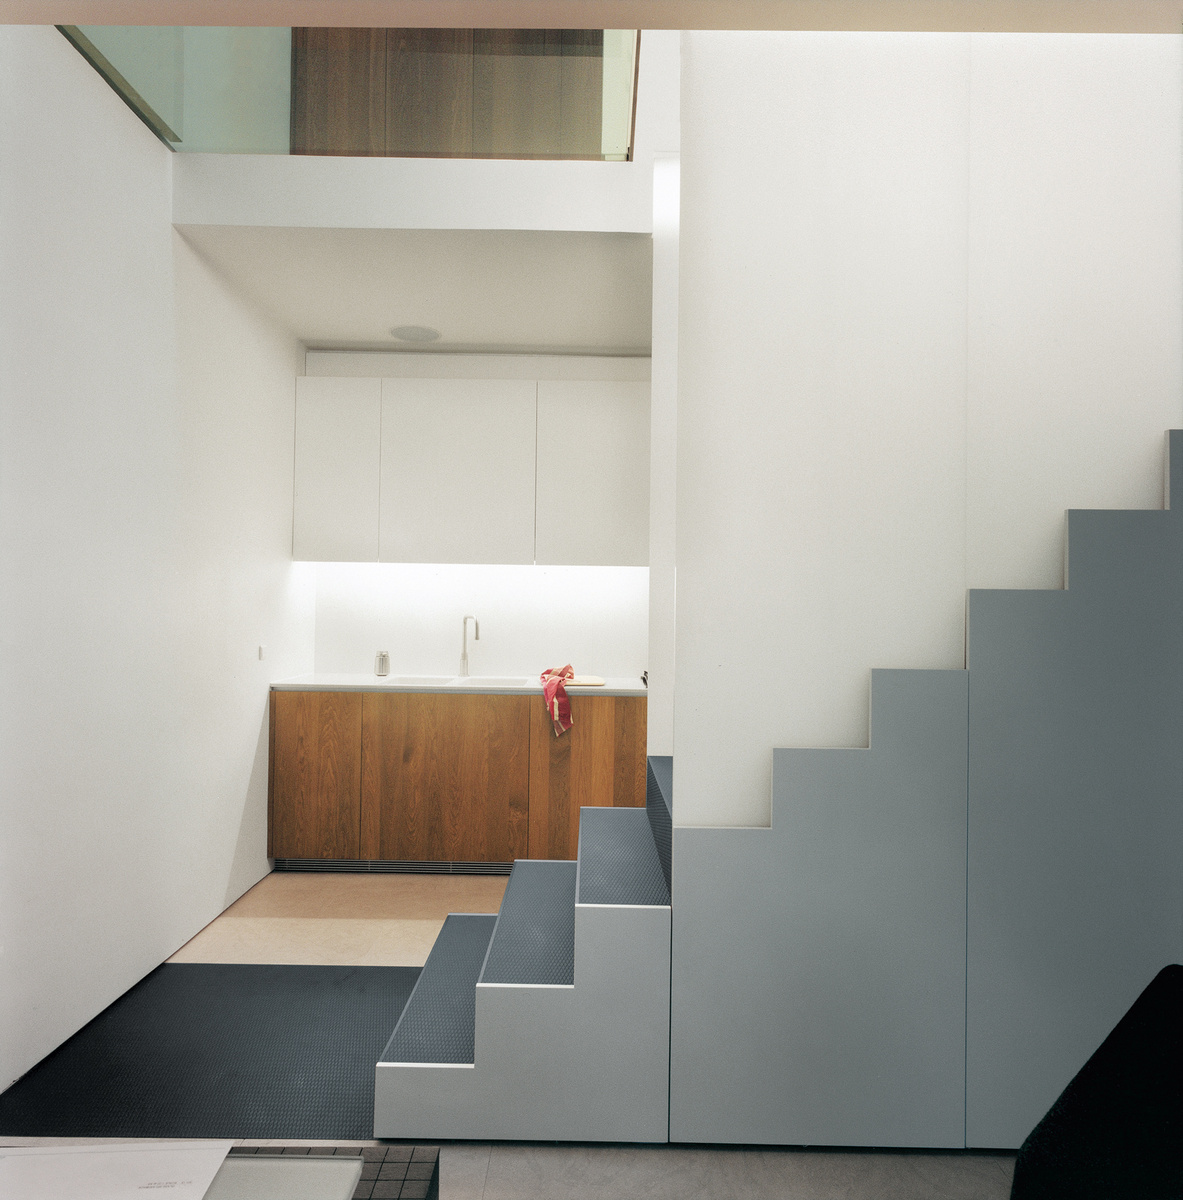 smith brennan residence stairs side view 0